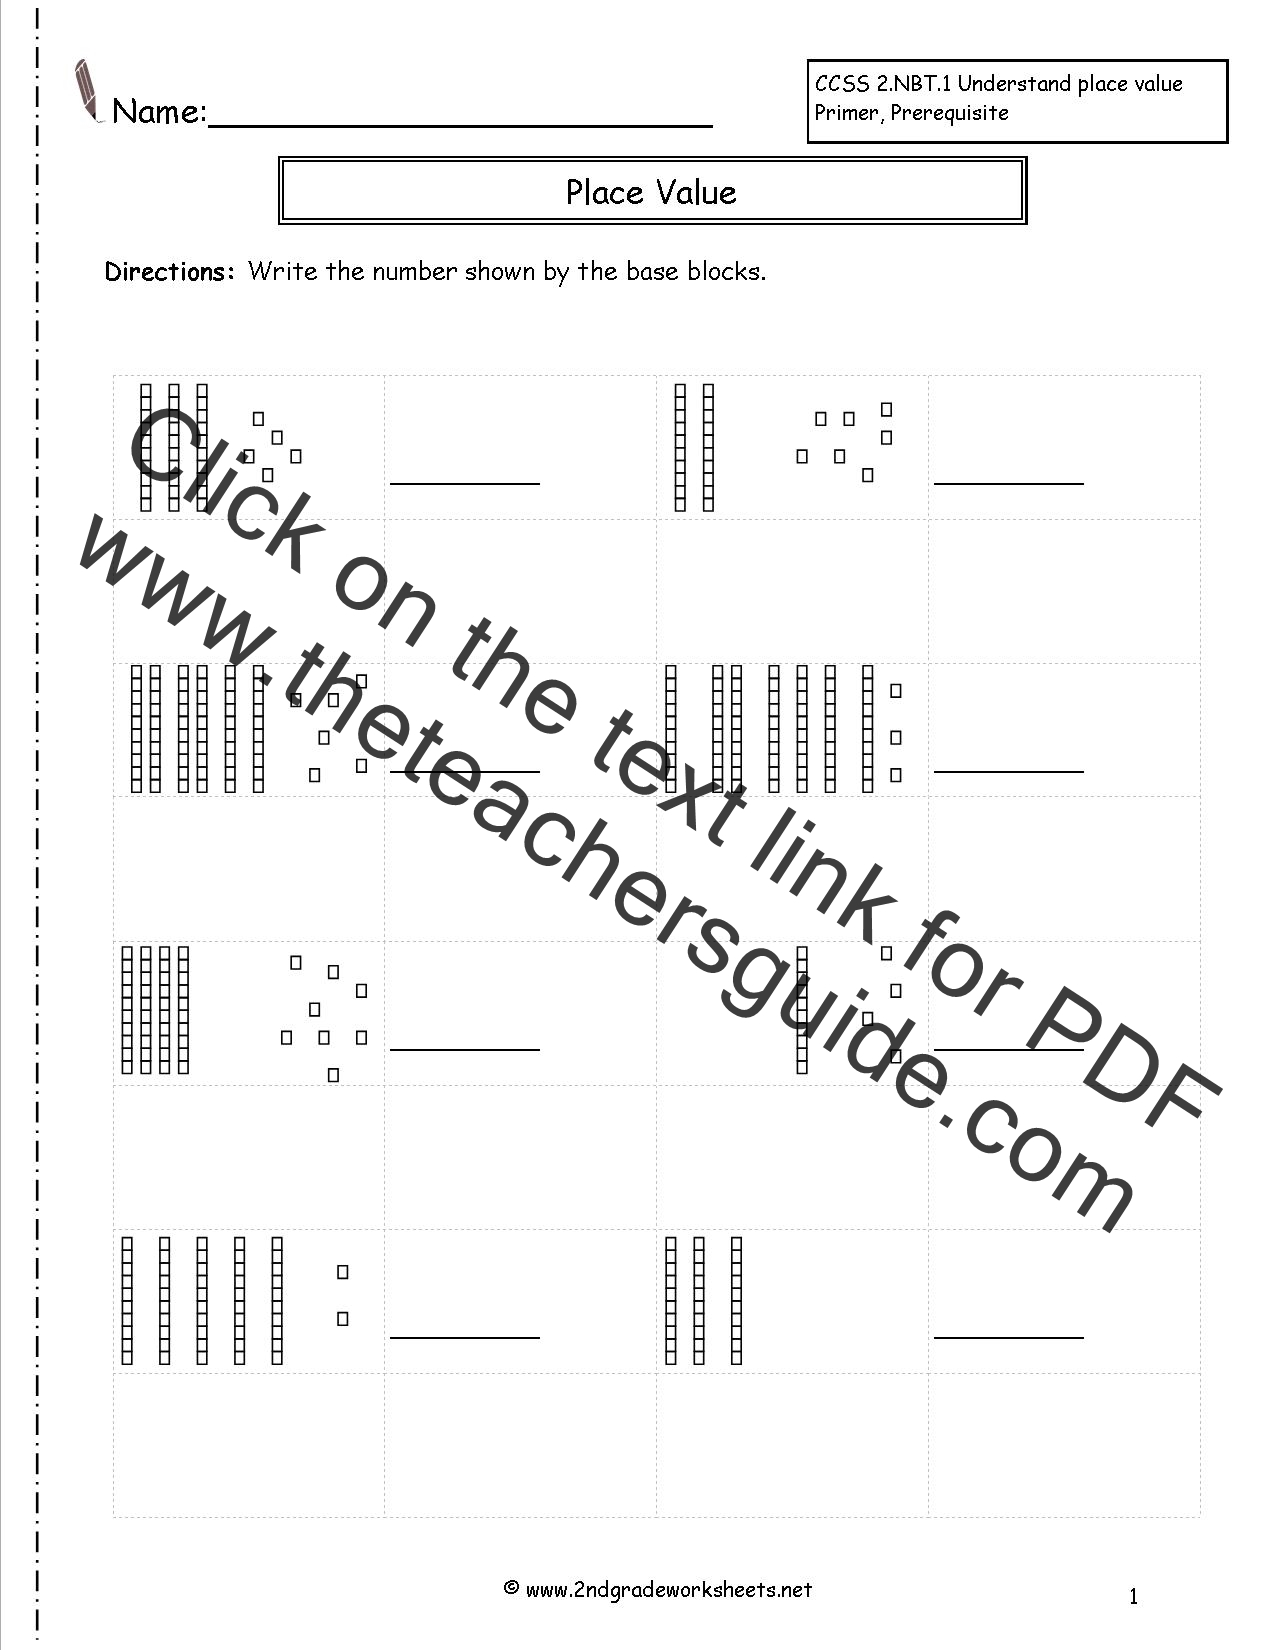 Worksheets Base 10 Blocks Worksheets second grade place value worksheets worksheet